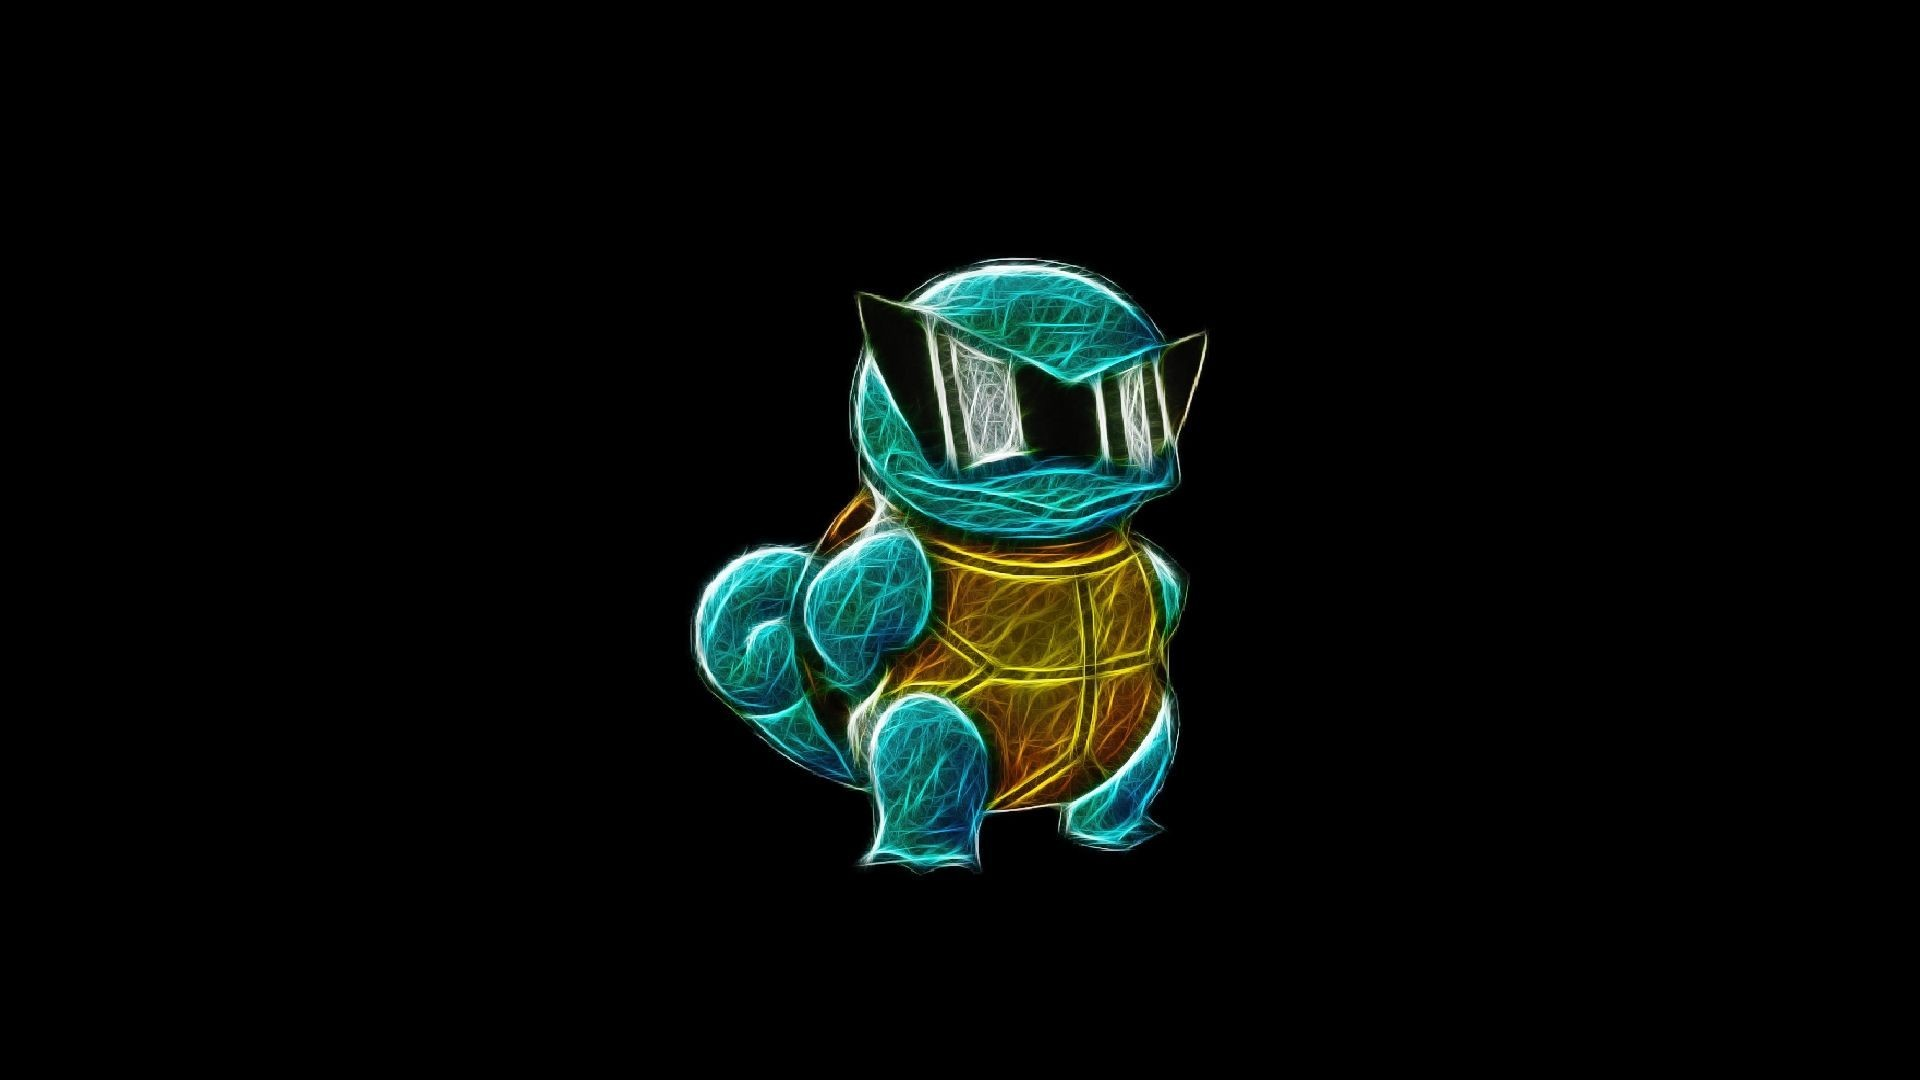 Squirtle Wallpapers (32 Wallpapers)